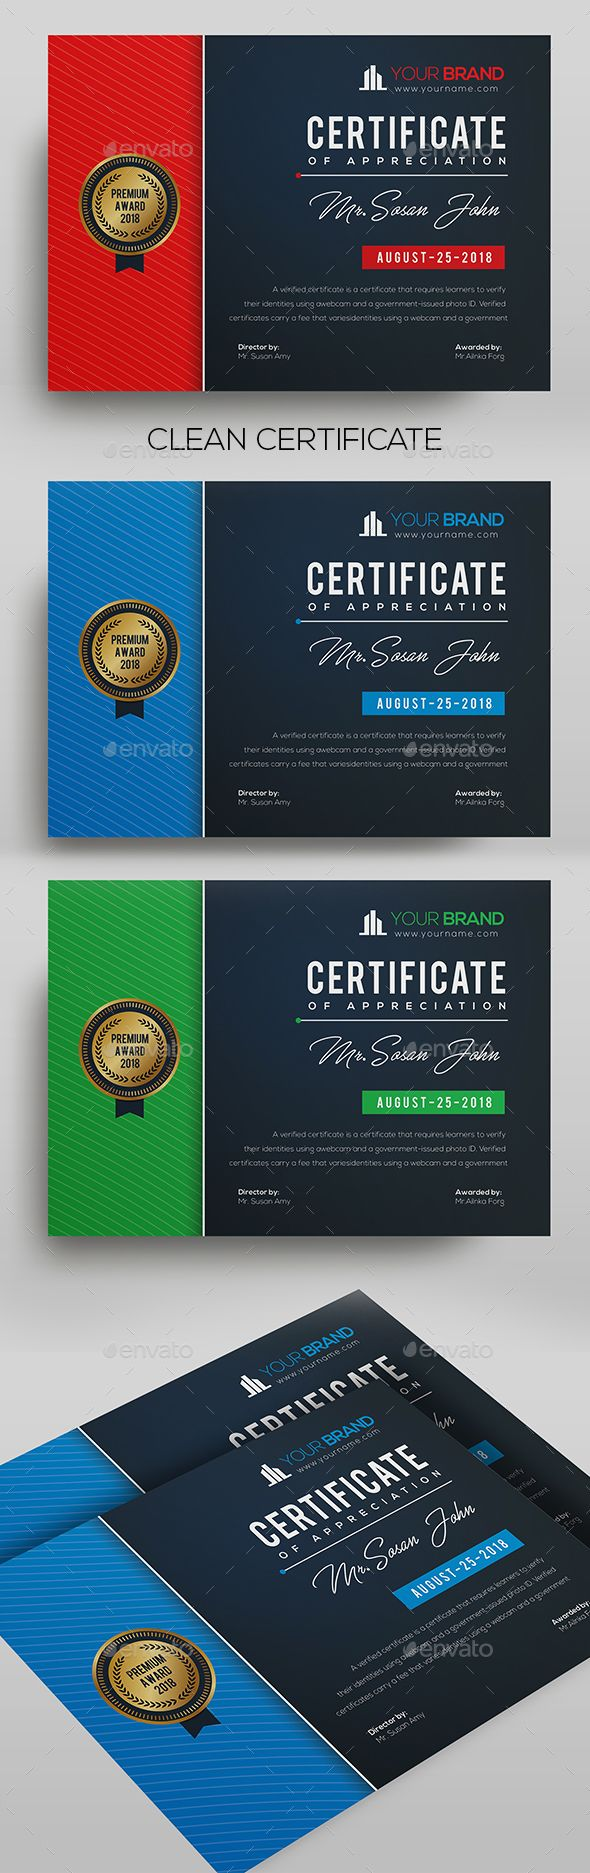 Certificate Certificate Template  Fully Clean Certificate A4 Paper Size With Bleeds Quick and easy to customize templates Any Size Changes Fully Group Layer Free Fonts Use Fully Vector